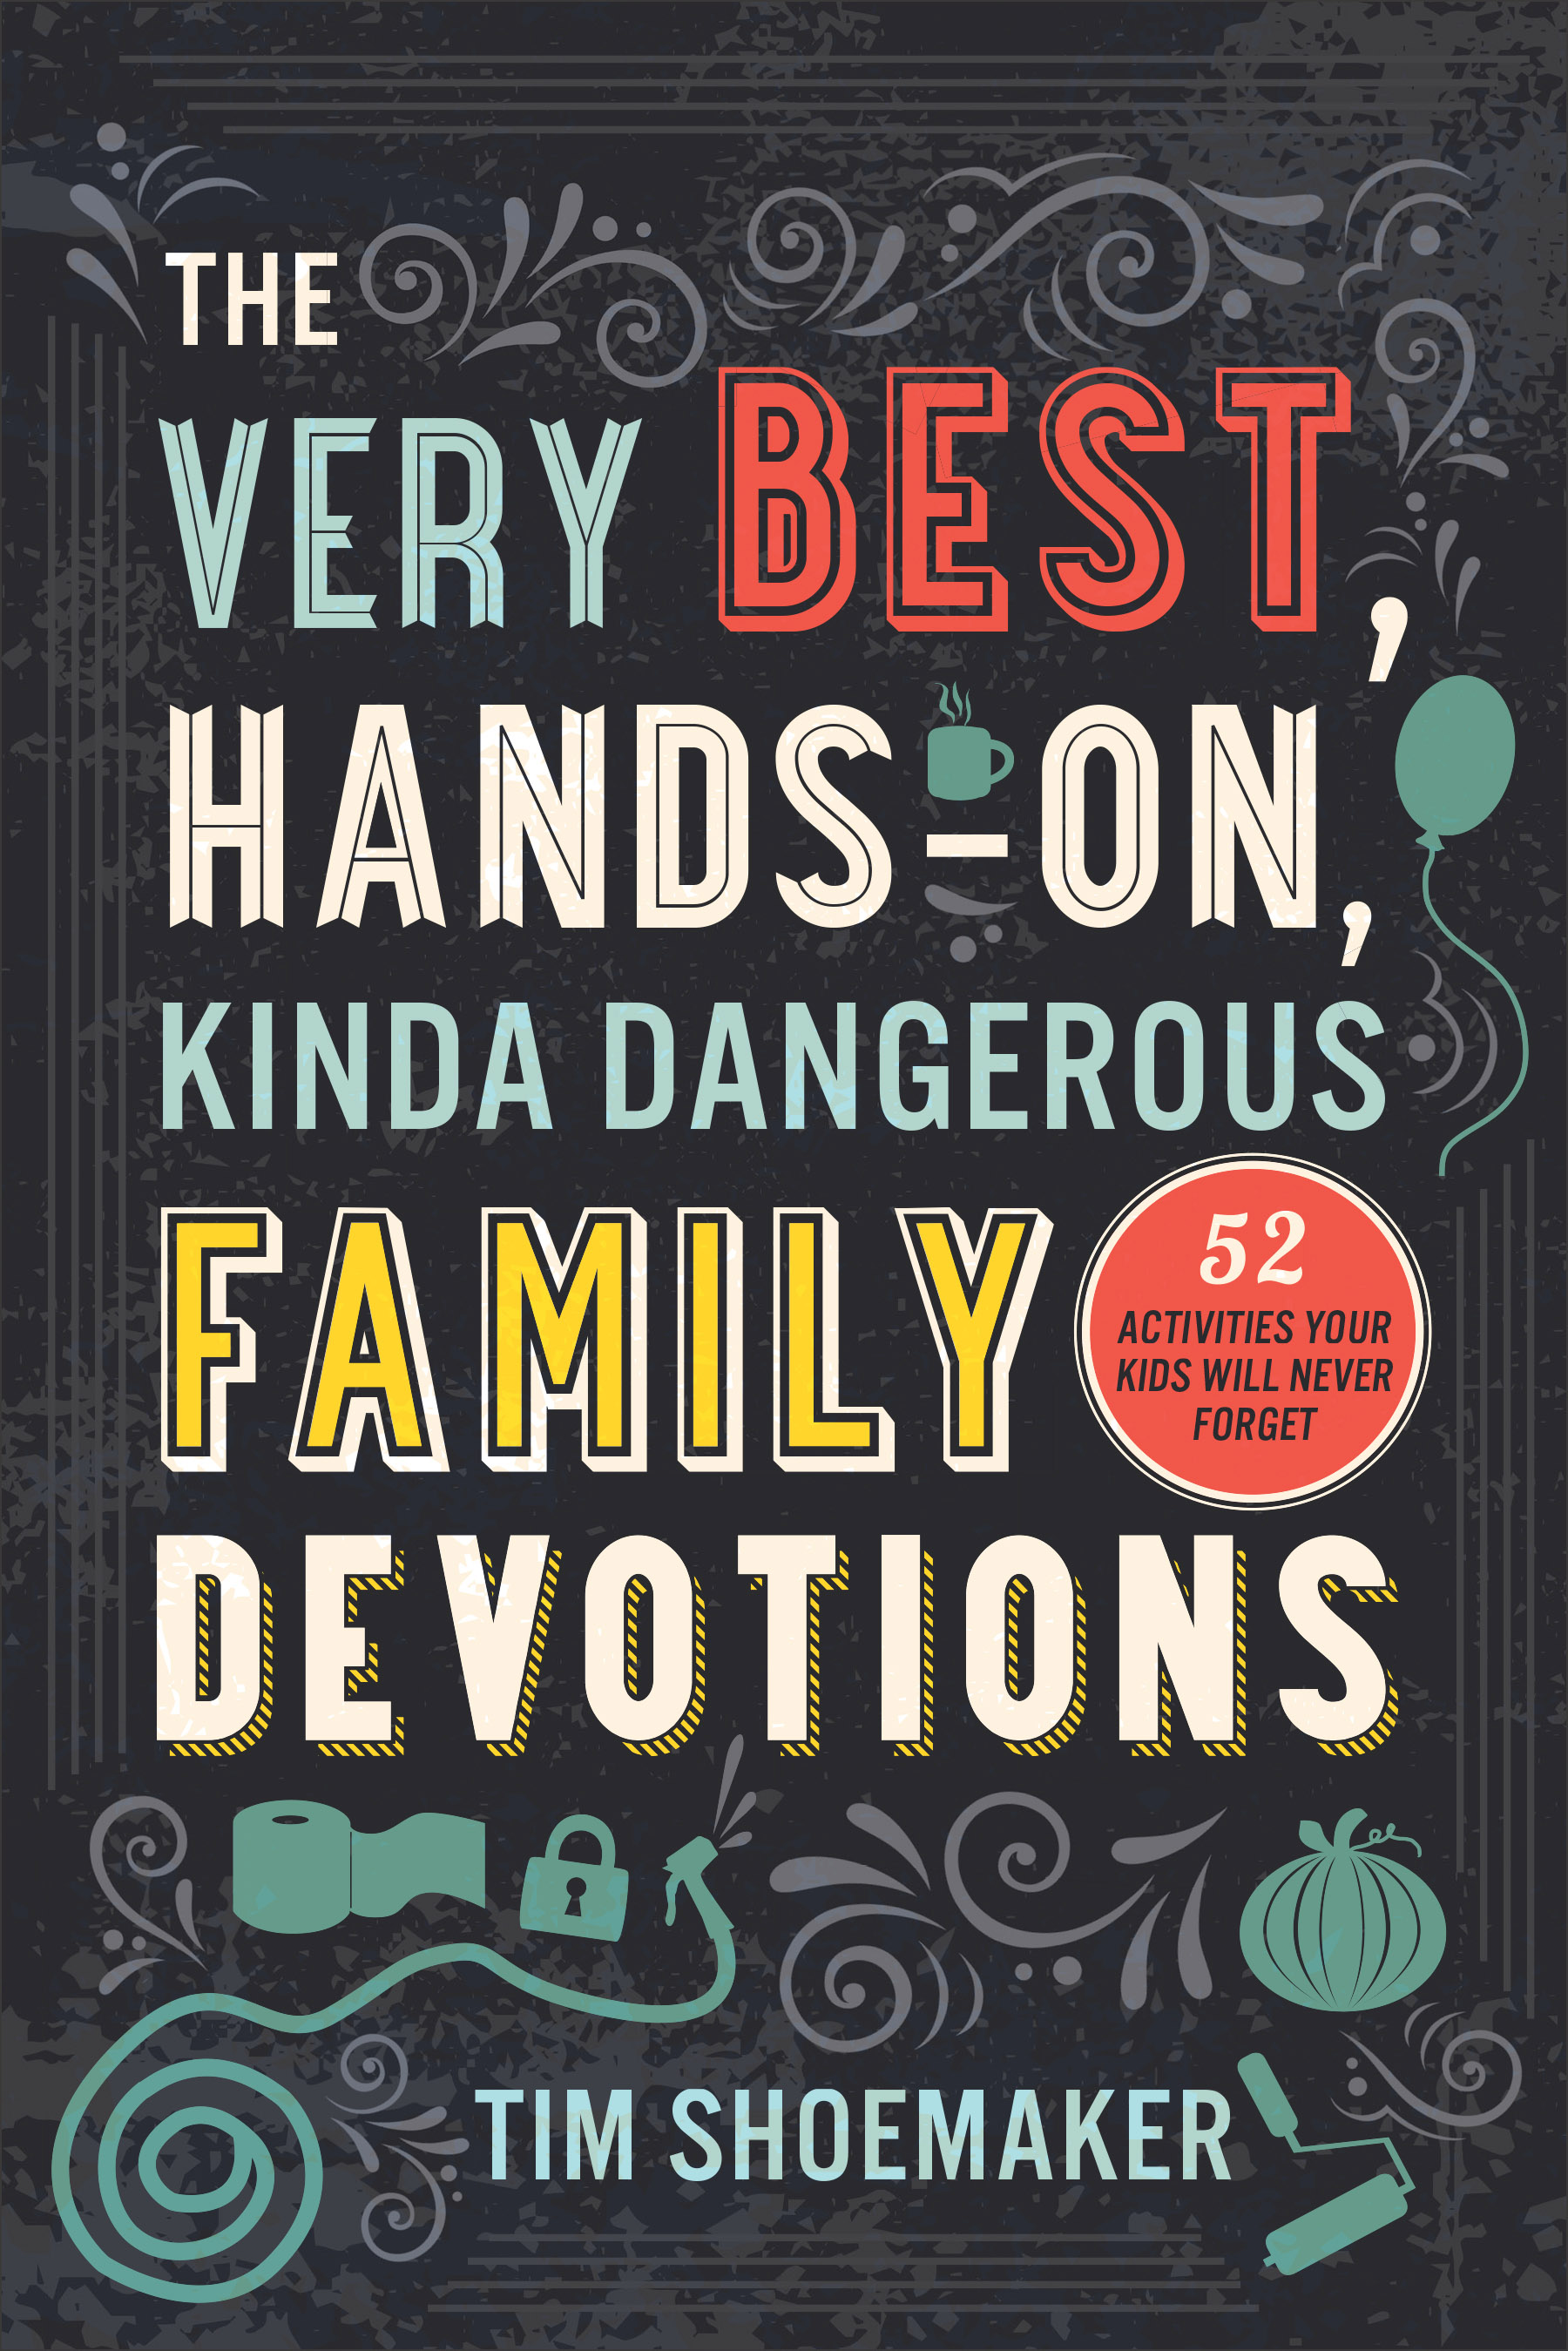 The Very Best Hands On Kinda Dangerous Family Devotions Cover pic.jpg